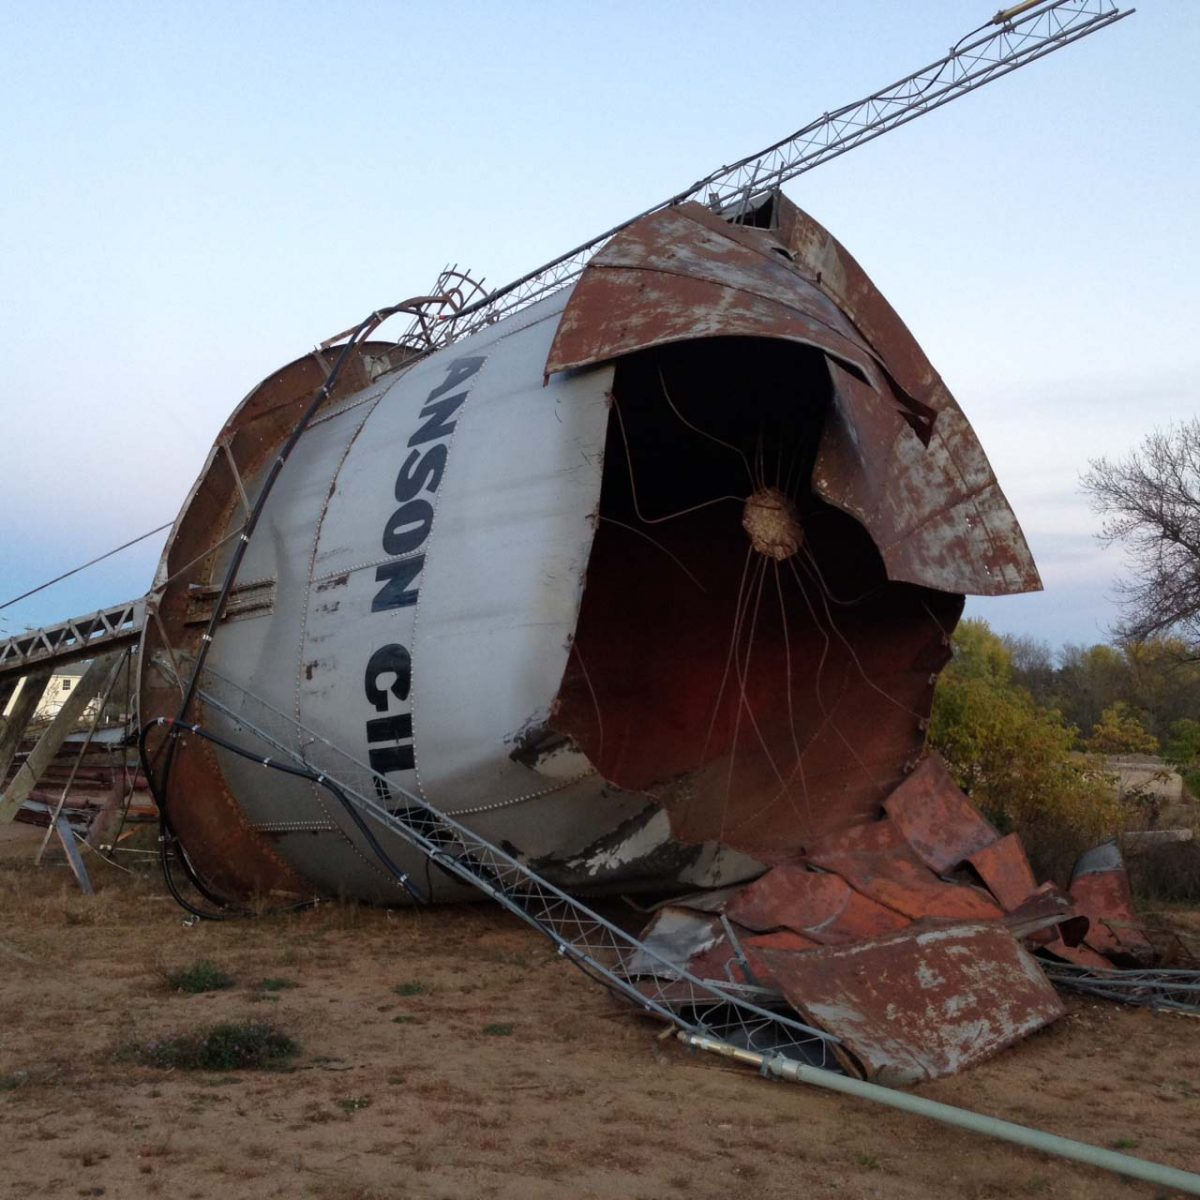 The Anson & Gilkey water tower came down in October as the city is clearing the site for redevelopment.